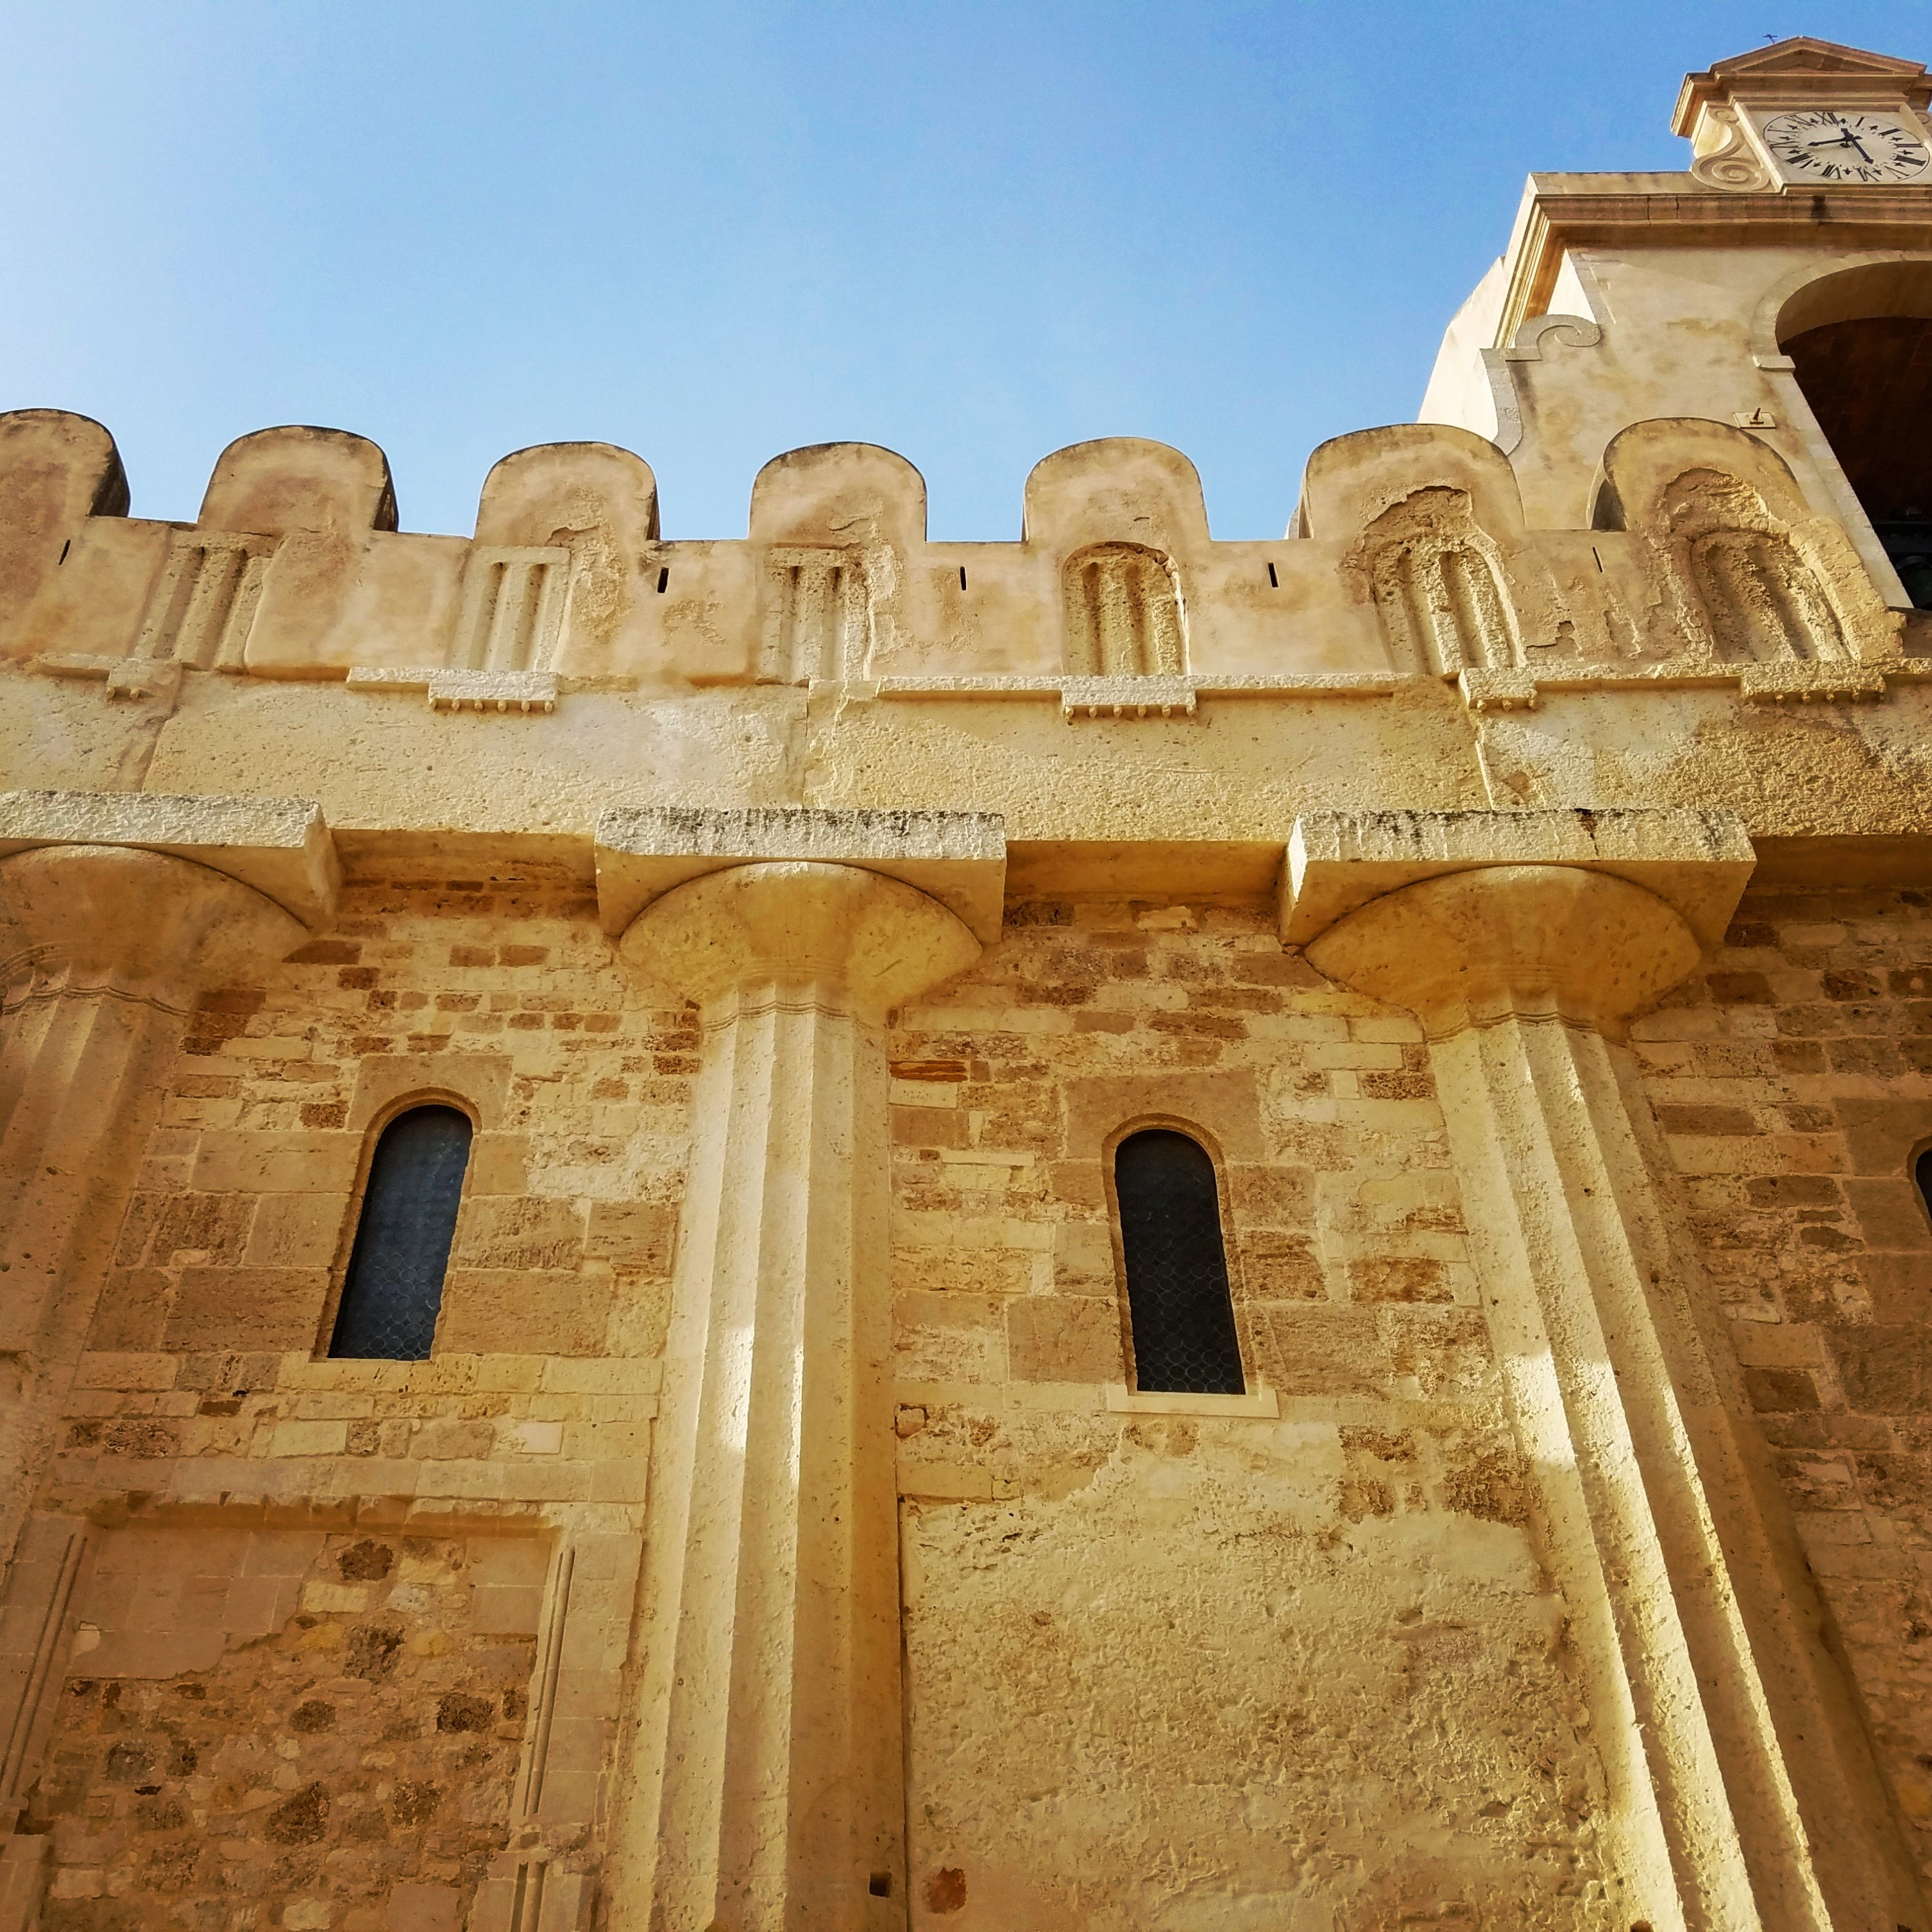 52 Reasons to Love Sicily   #29. Ancient Surprises